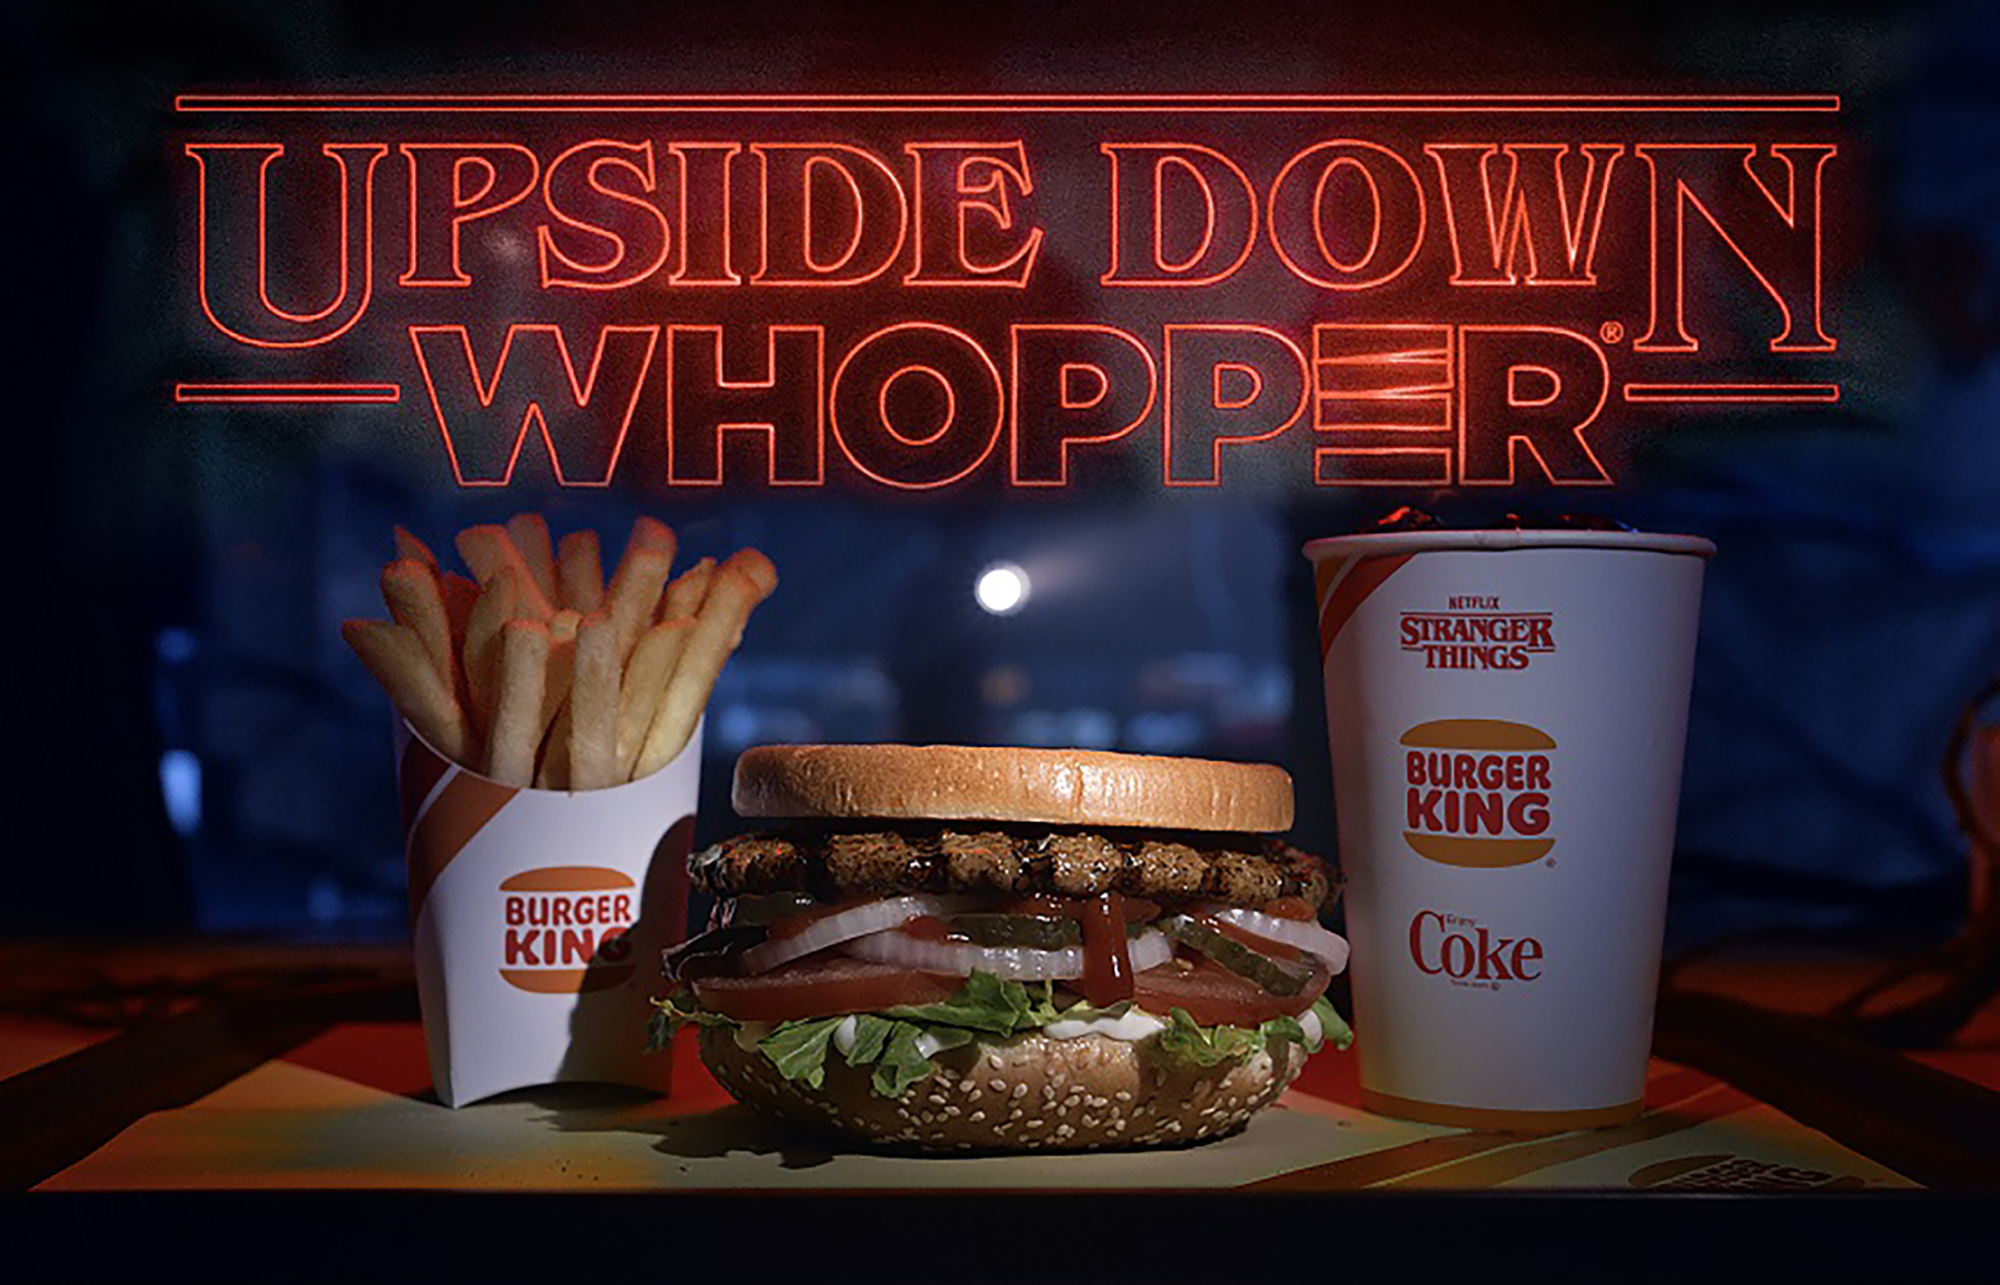 Stranger Things' and Burger King Collaborate on 'Upside Down